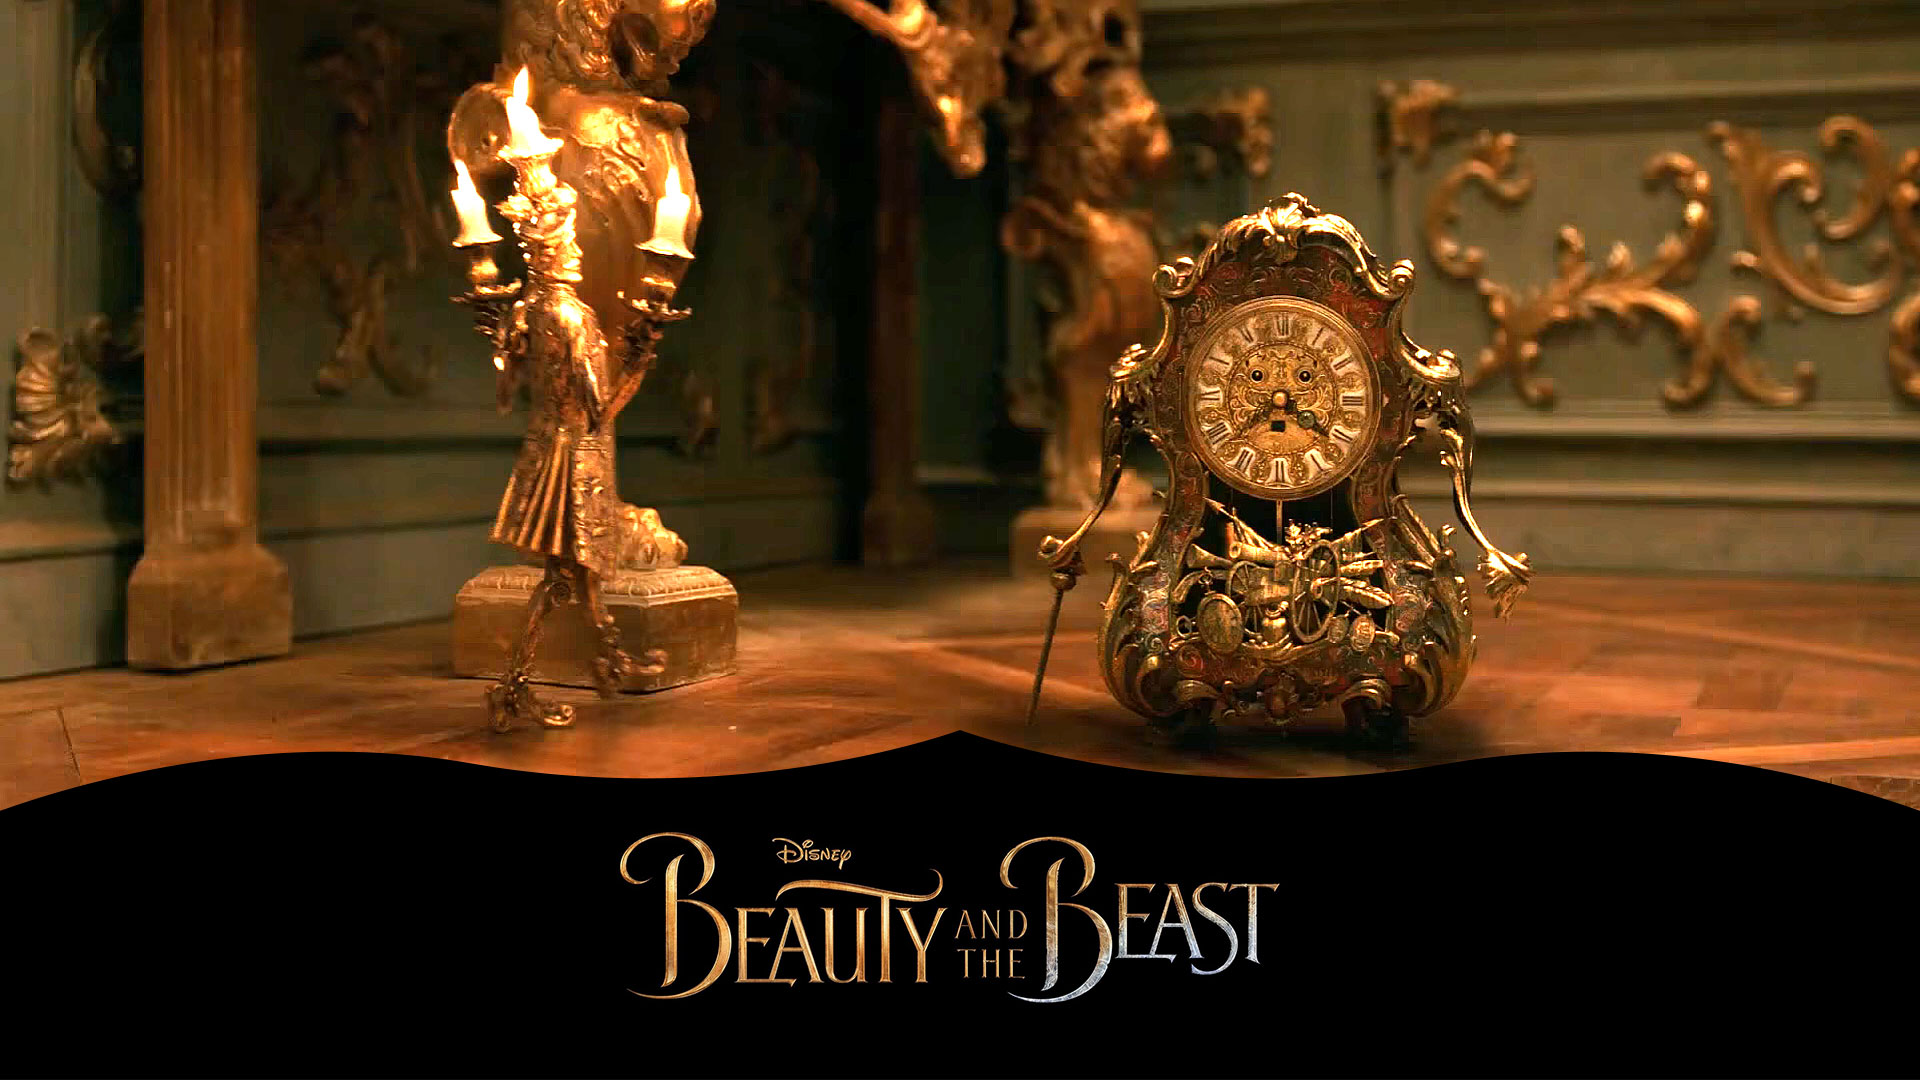 18 New Beauty And The Beast 2017 Movie Hd Desktop Wallpapers